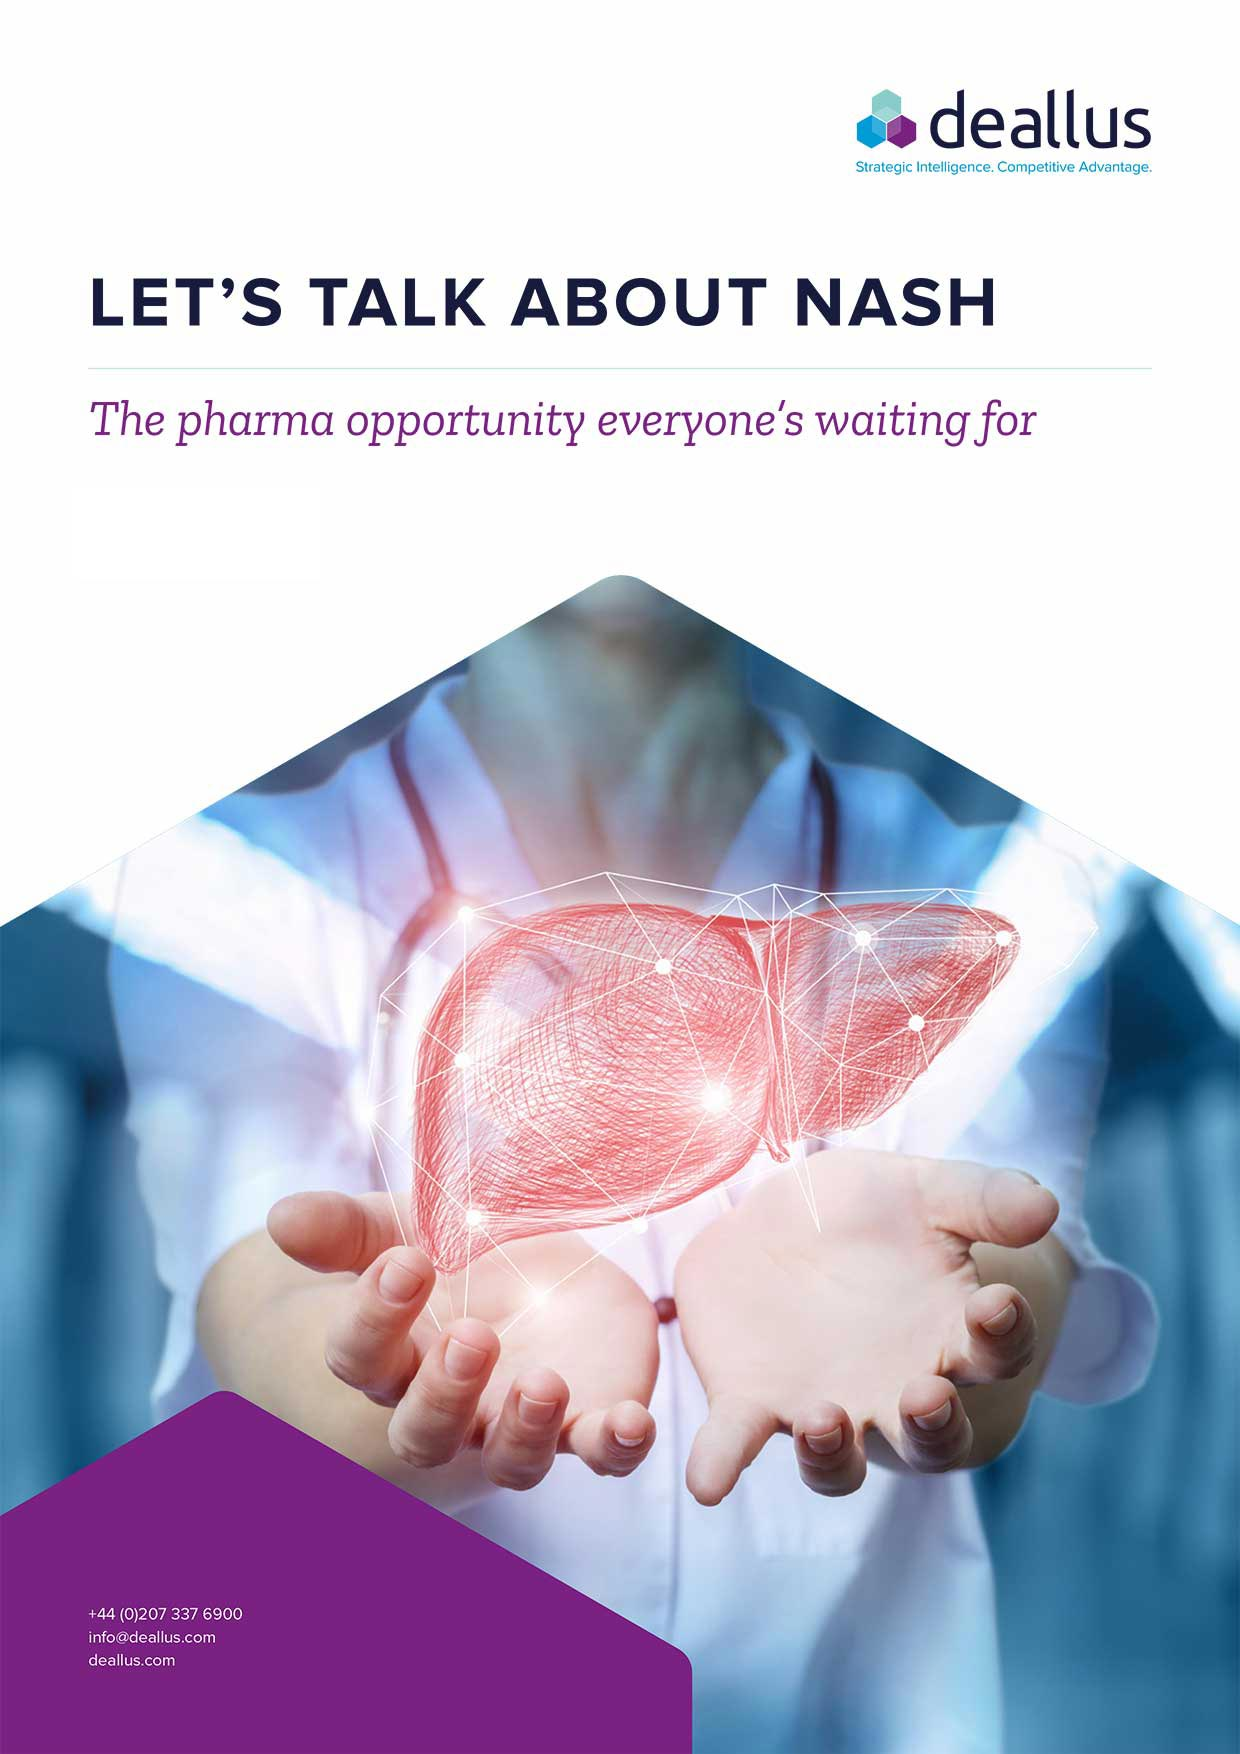 NASH White Paper From Deallus